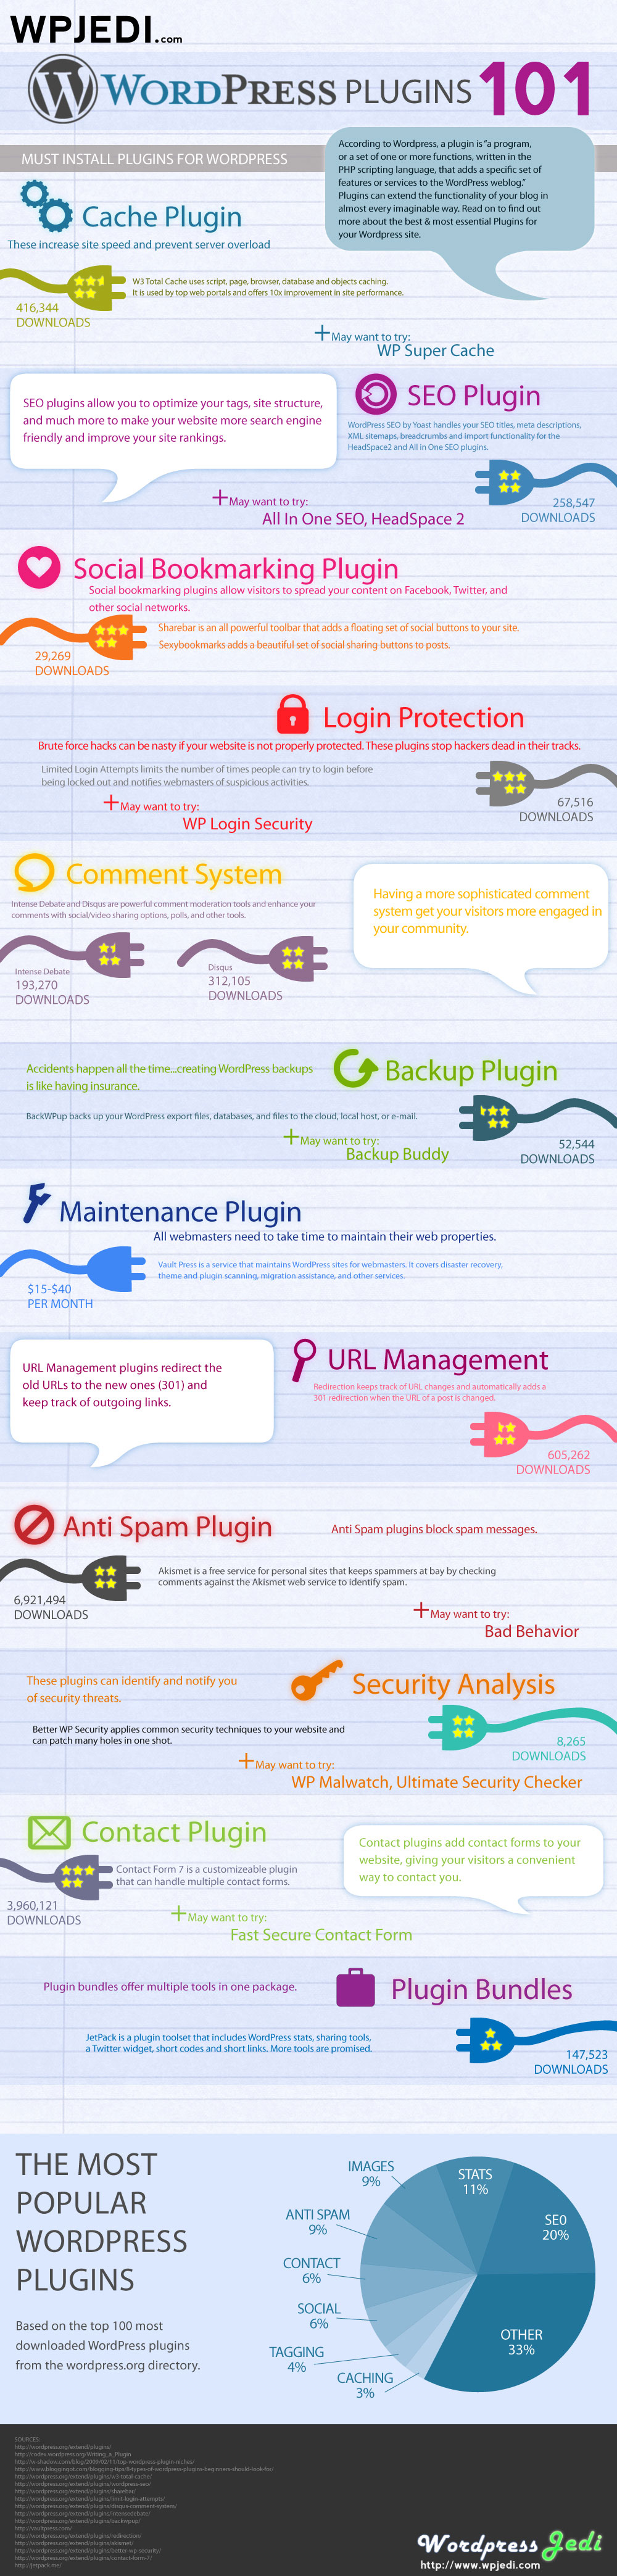 must have WP plugins